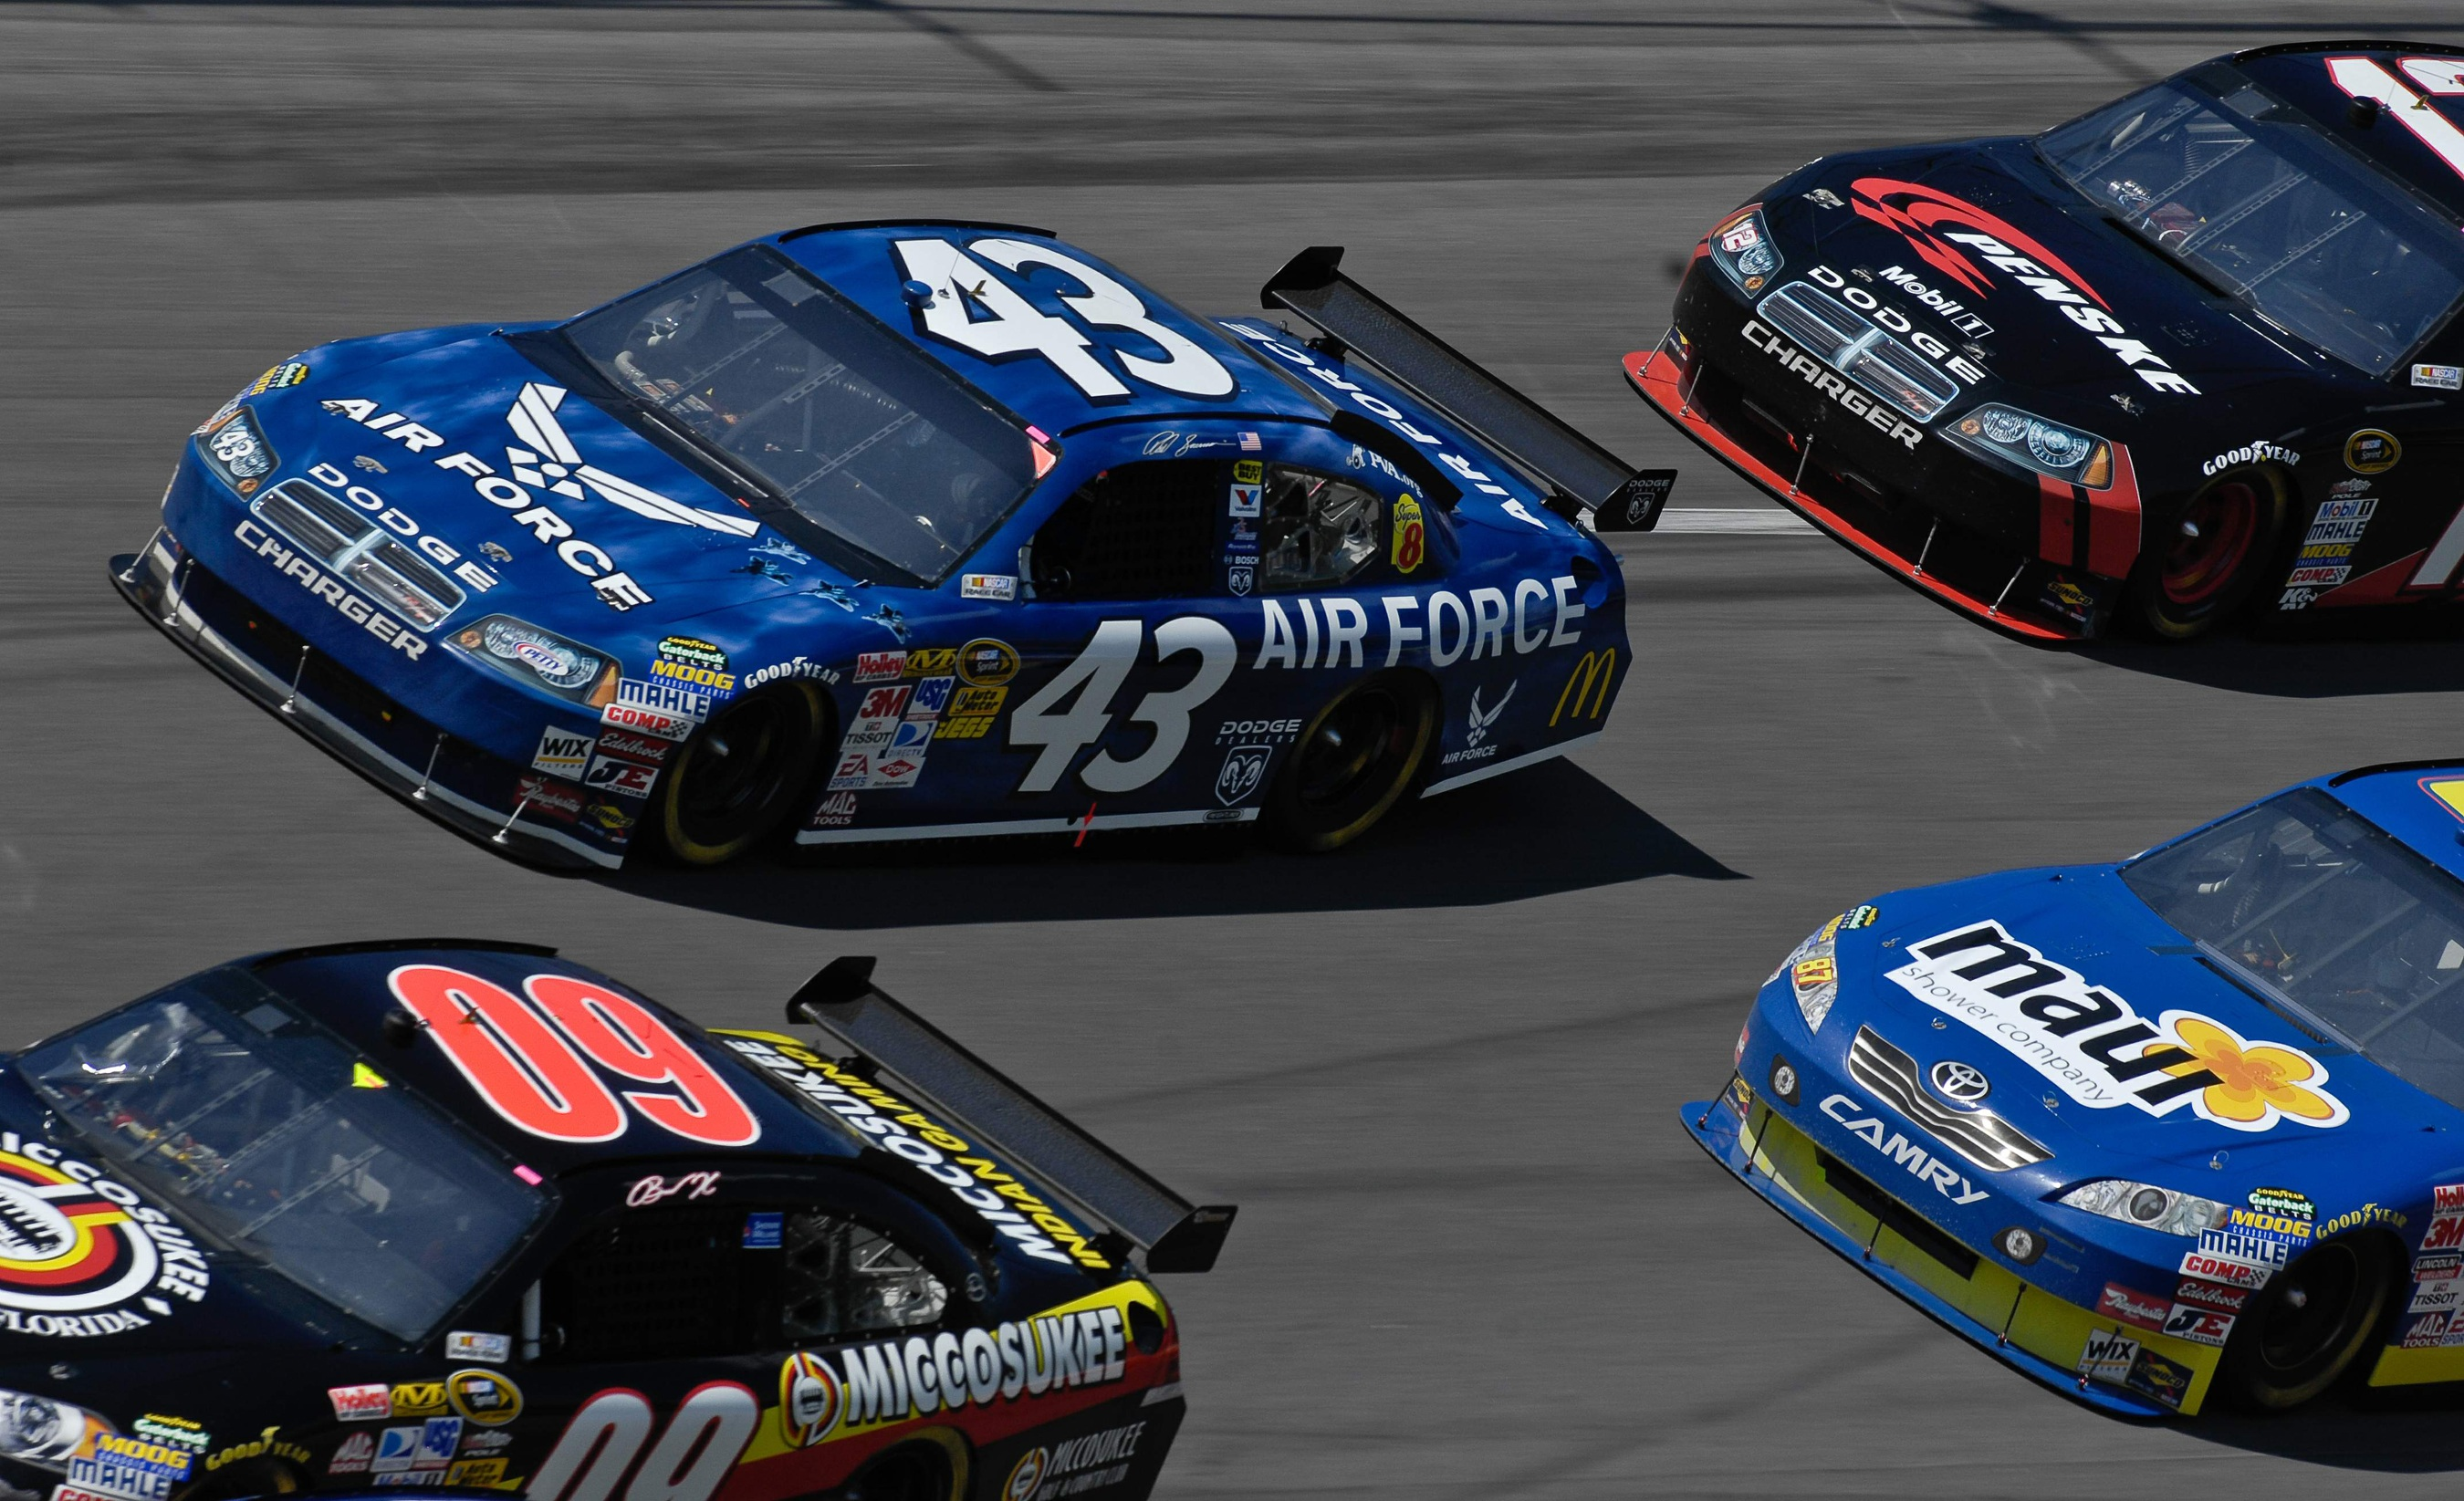 Penn National Gaming lands partnership with Nascar – iGaming Business